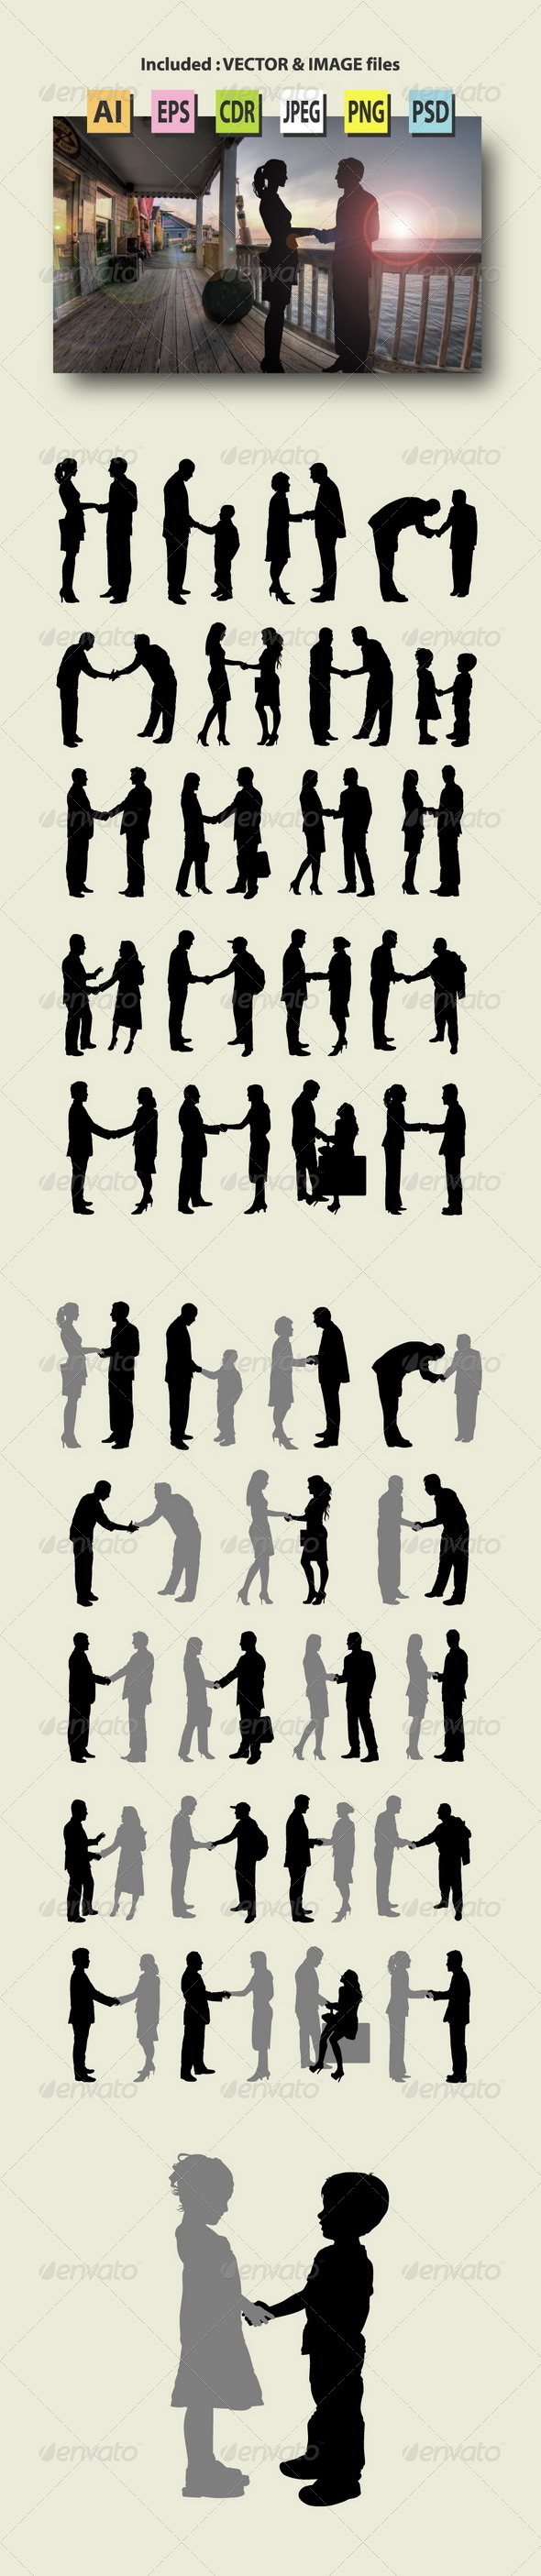 GraphicRiver People Handshake Silhouettes 8639087